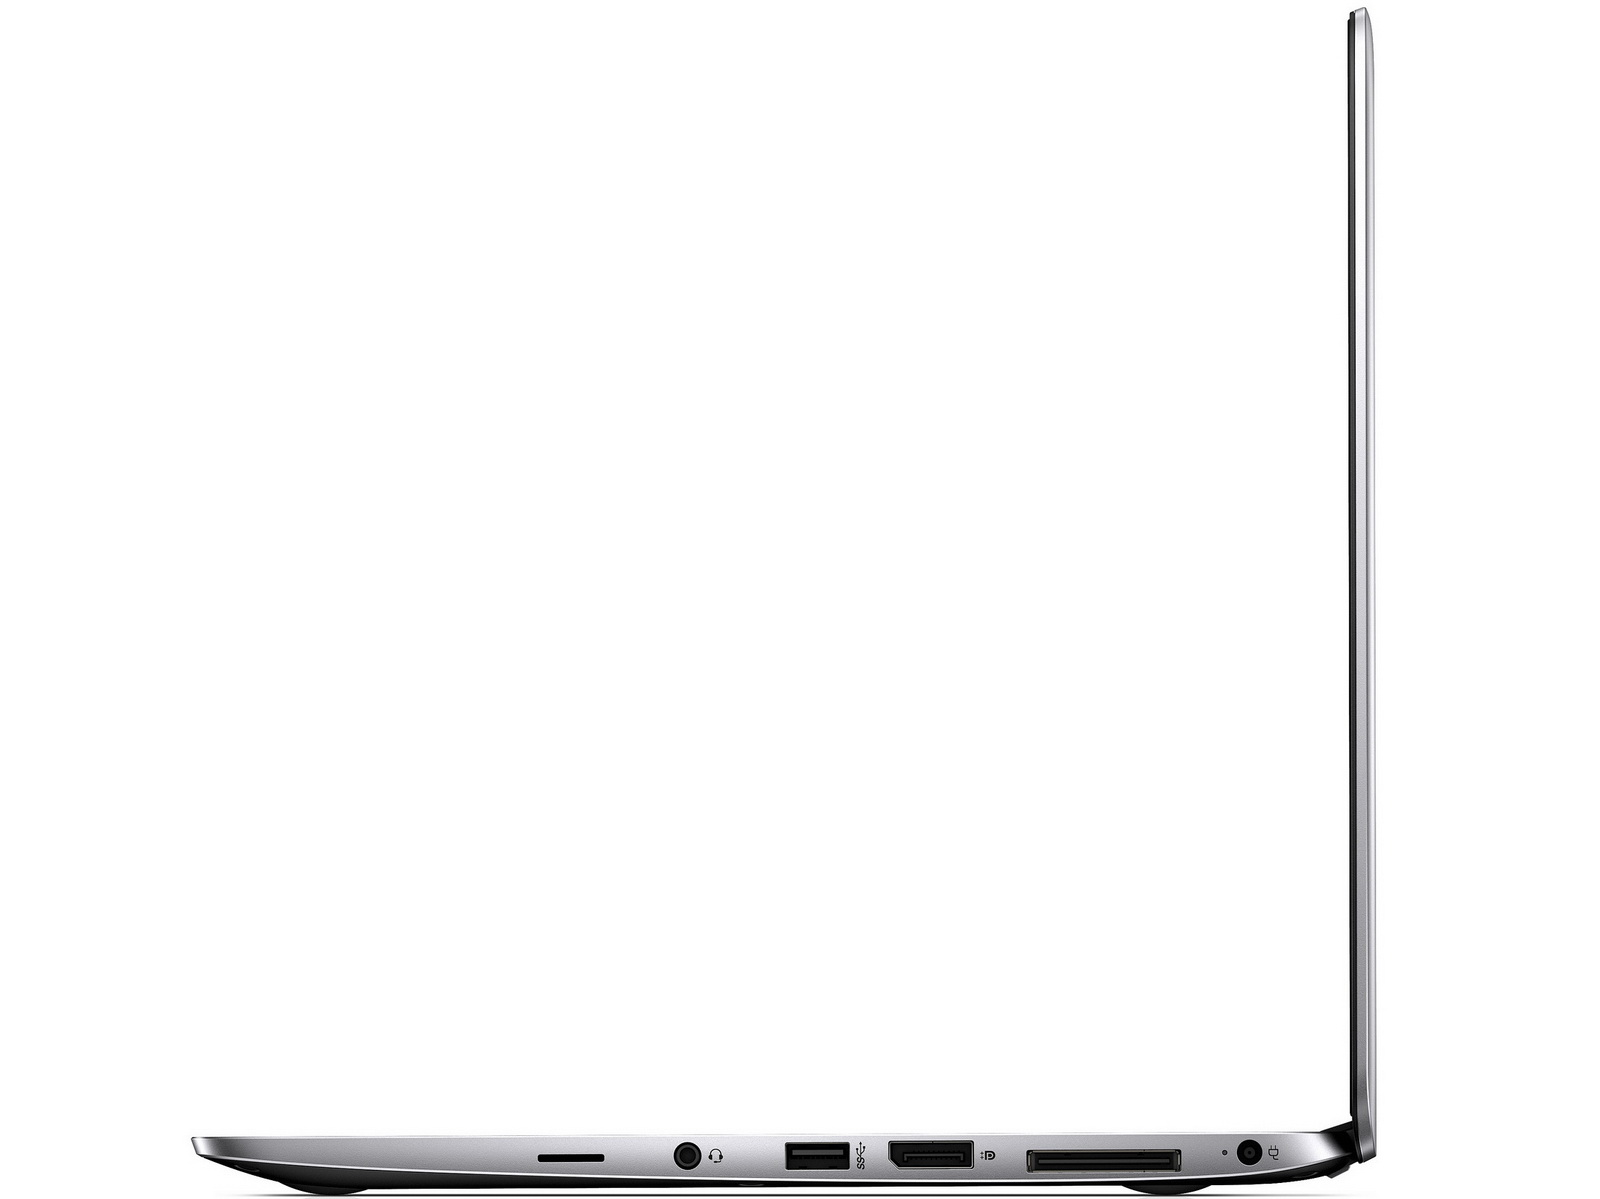 HP EliteBook Folio 1040 G1 14inch Business Notebook PC